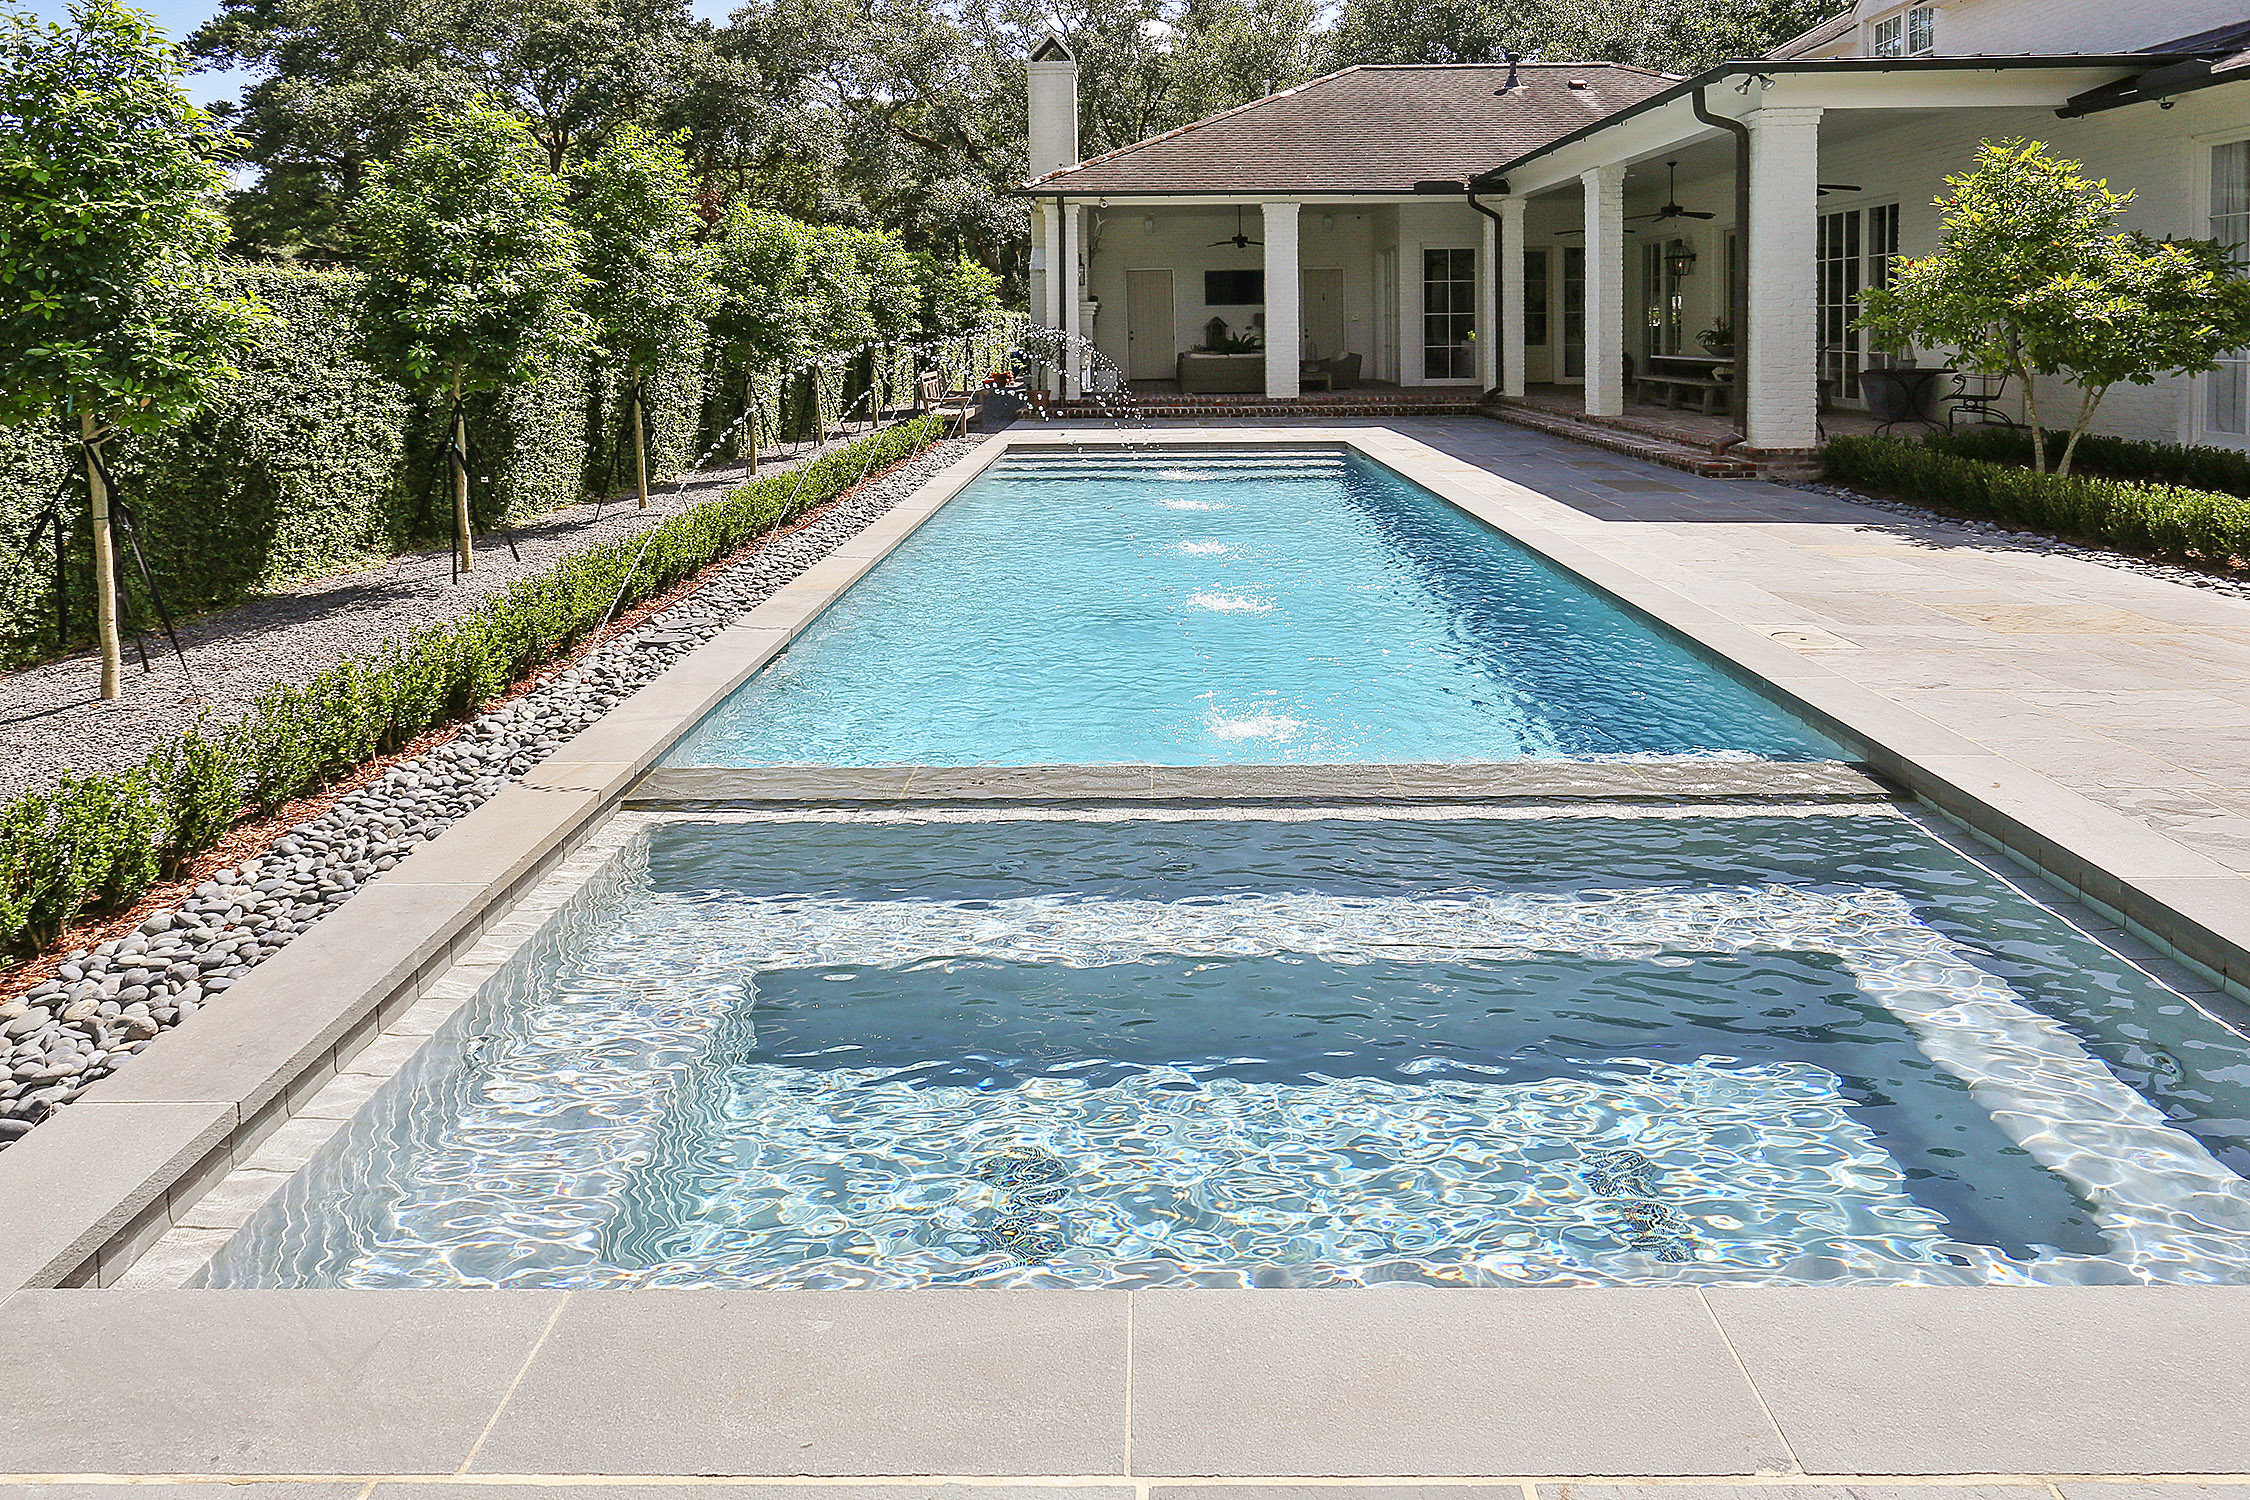 Jacuzzi In The Pool Southern Pool With Flush Spa Bluestone Decking Baton Rouge